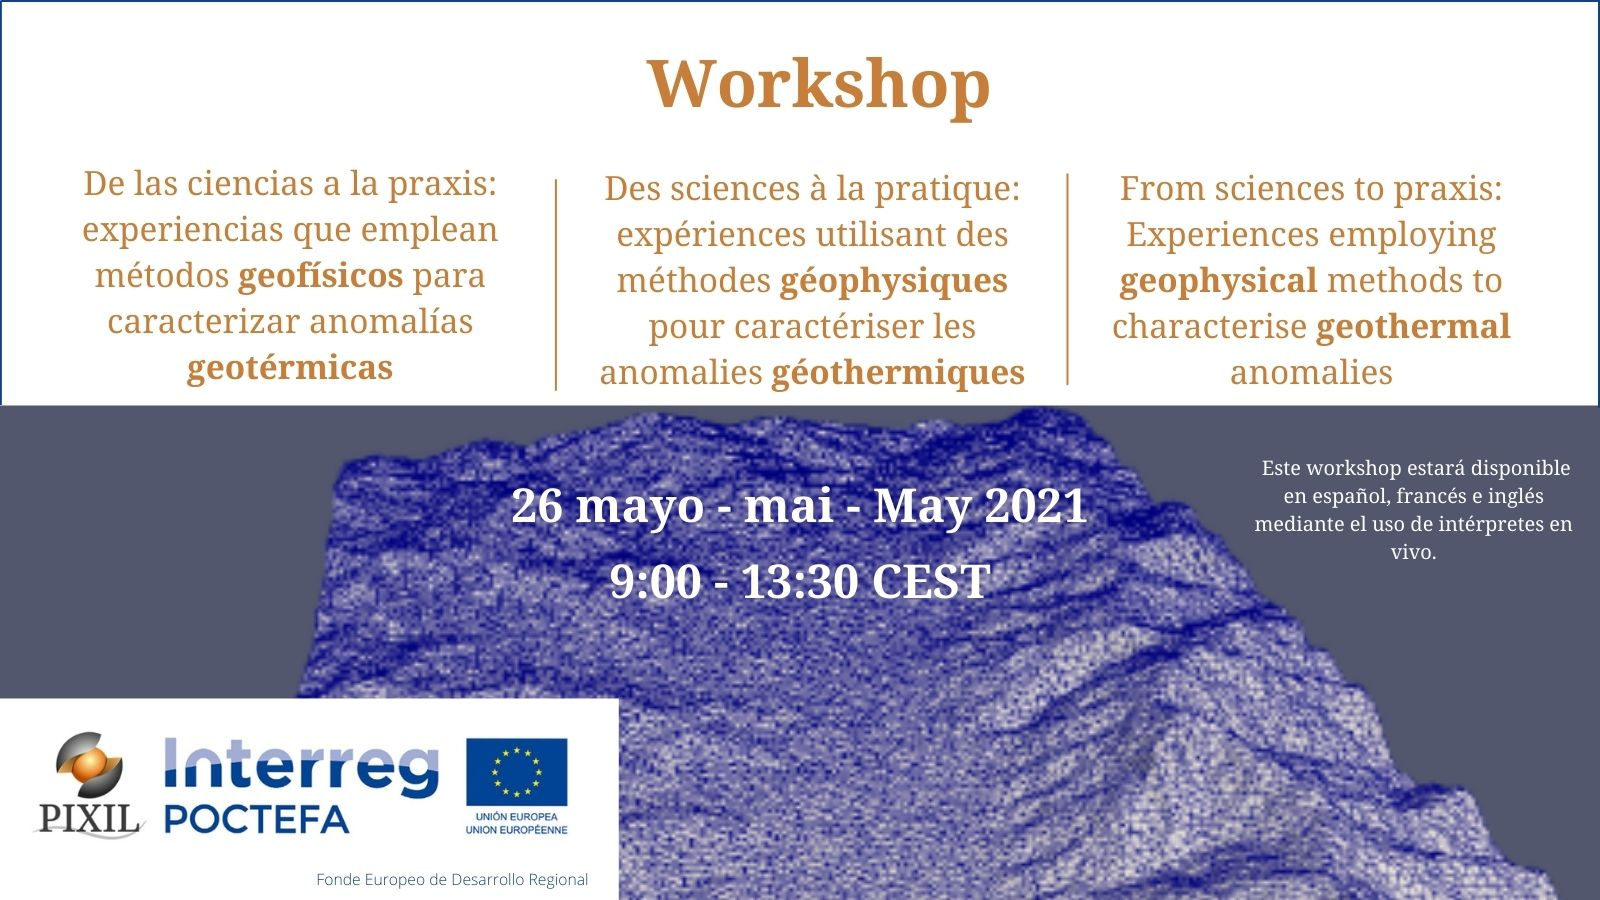 PIXIL holds its second workshop about the use of geophysical methods to characterise geothermal anomalies